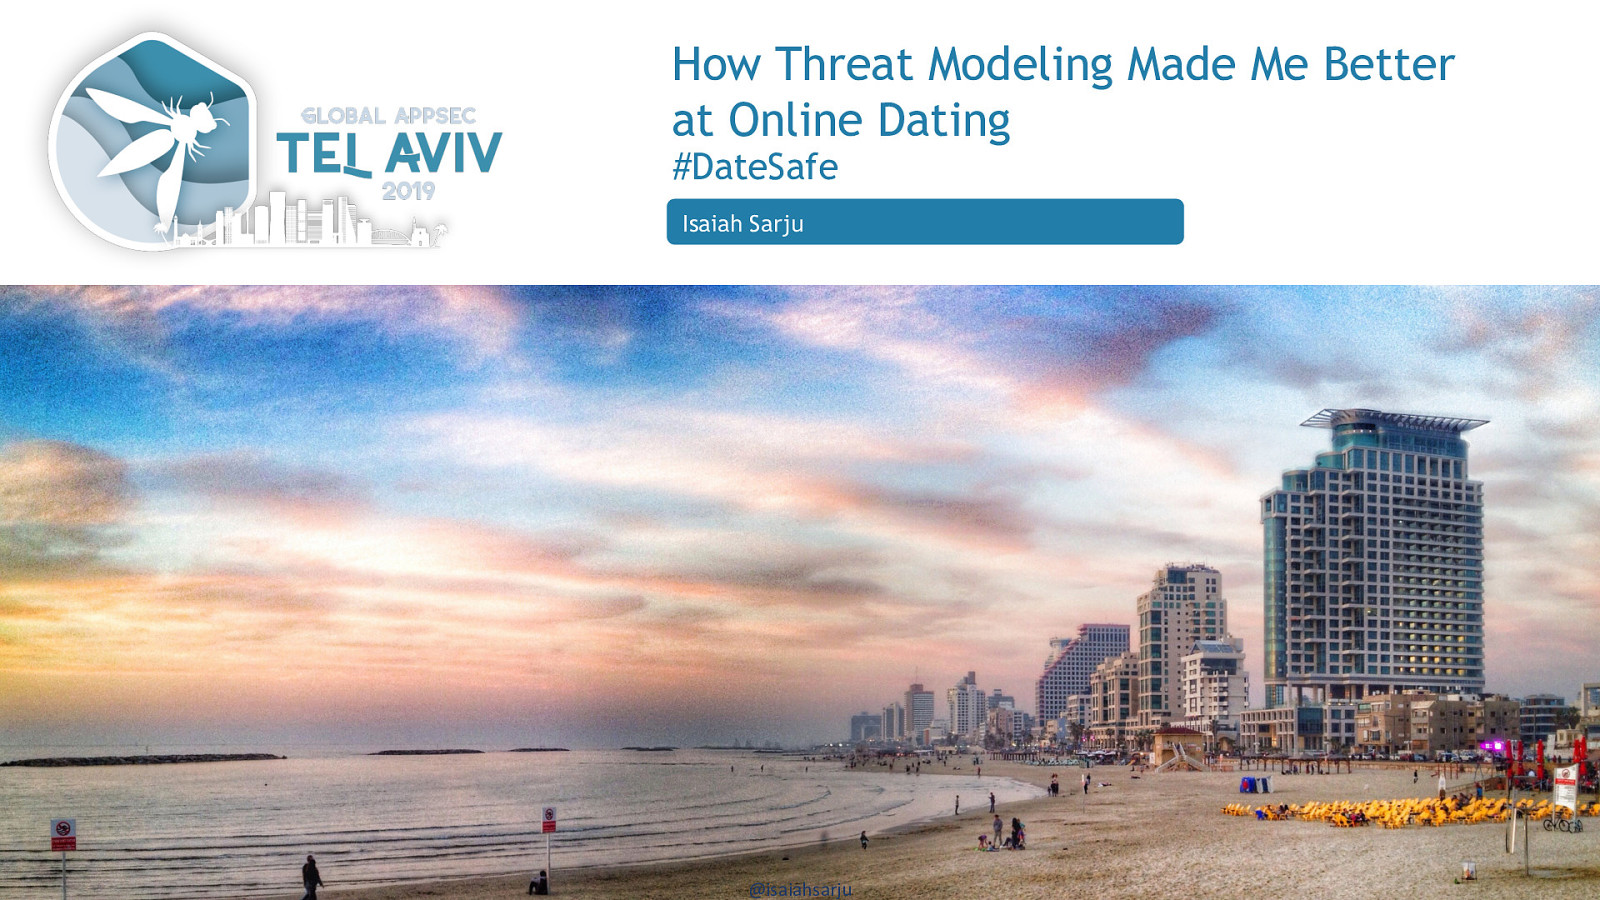 How Online Dating Made Me Better At Threat Modeling